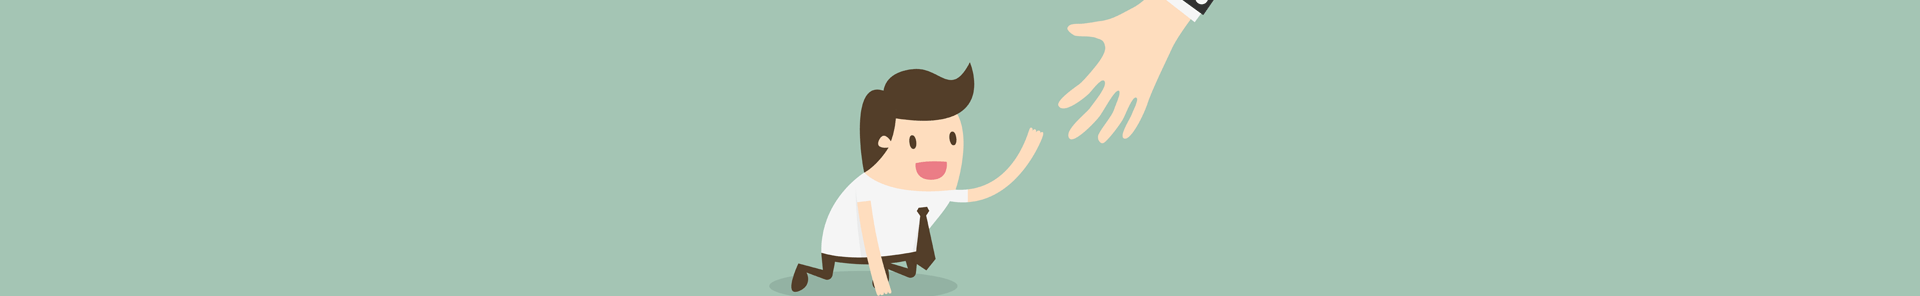 Cartoon of a person receiving a helping hand